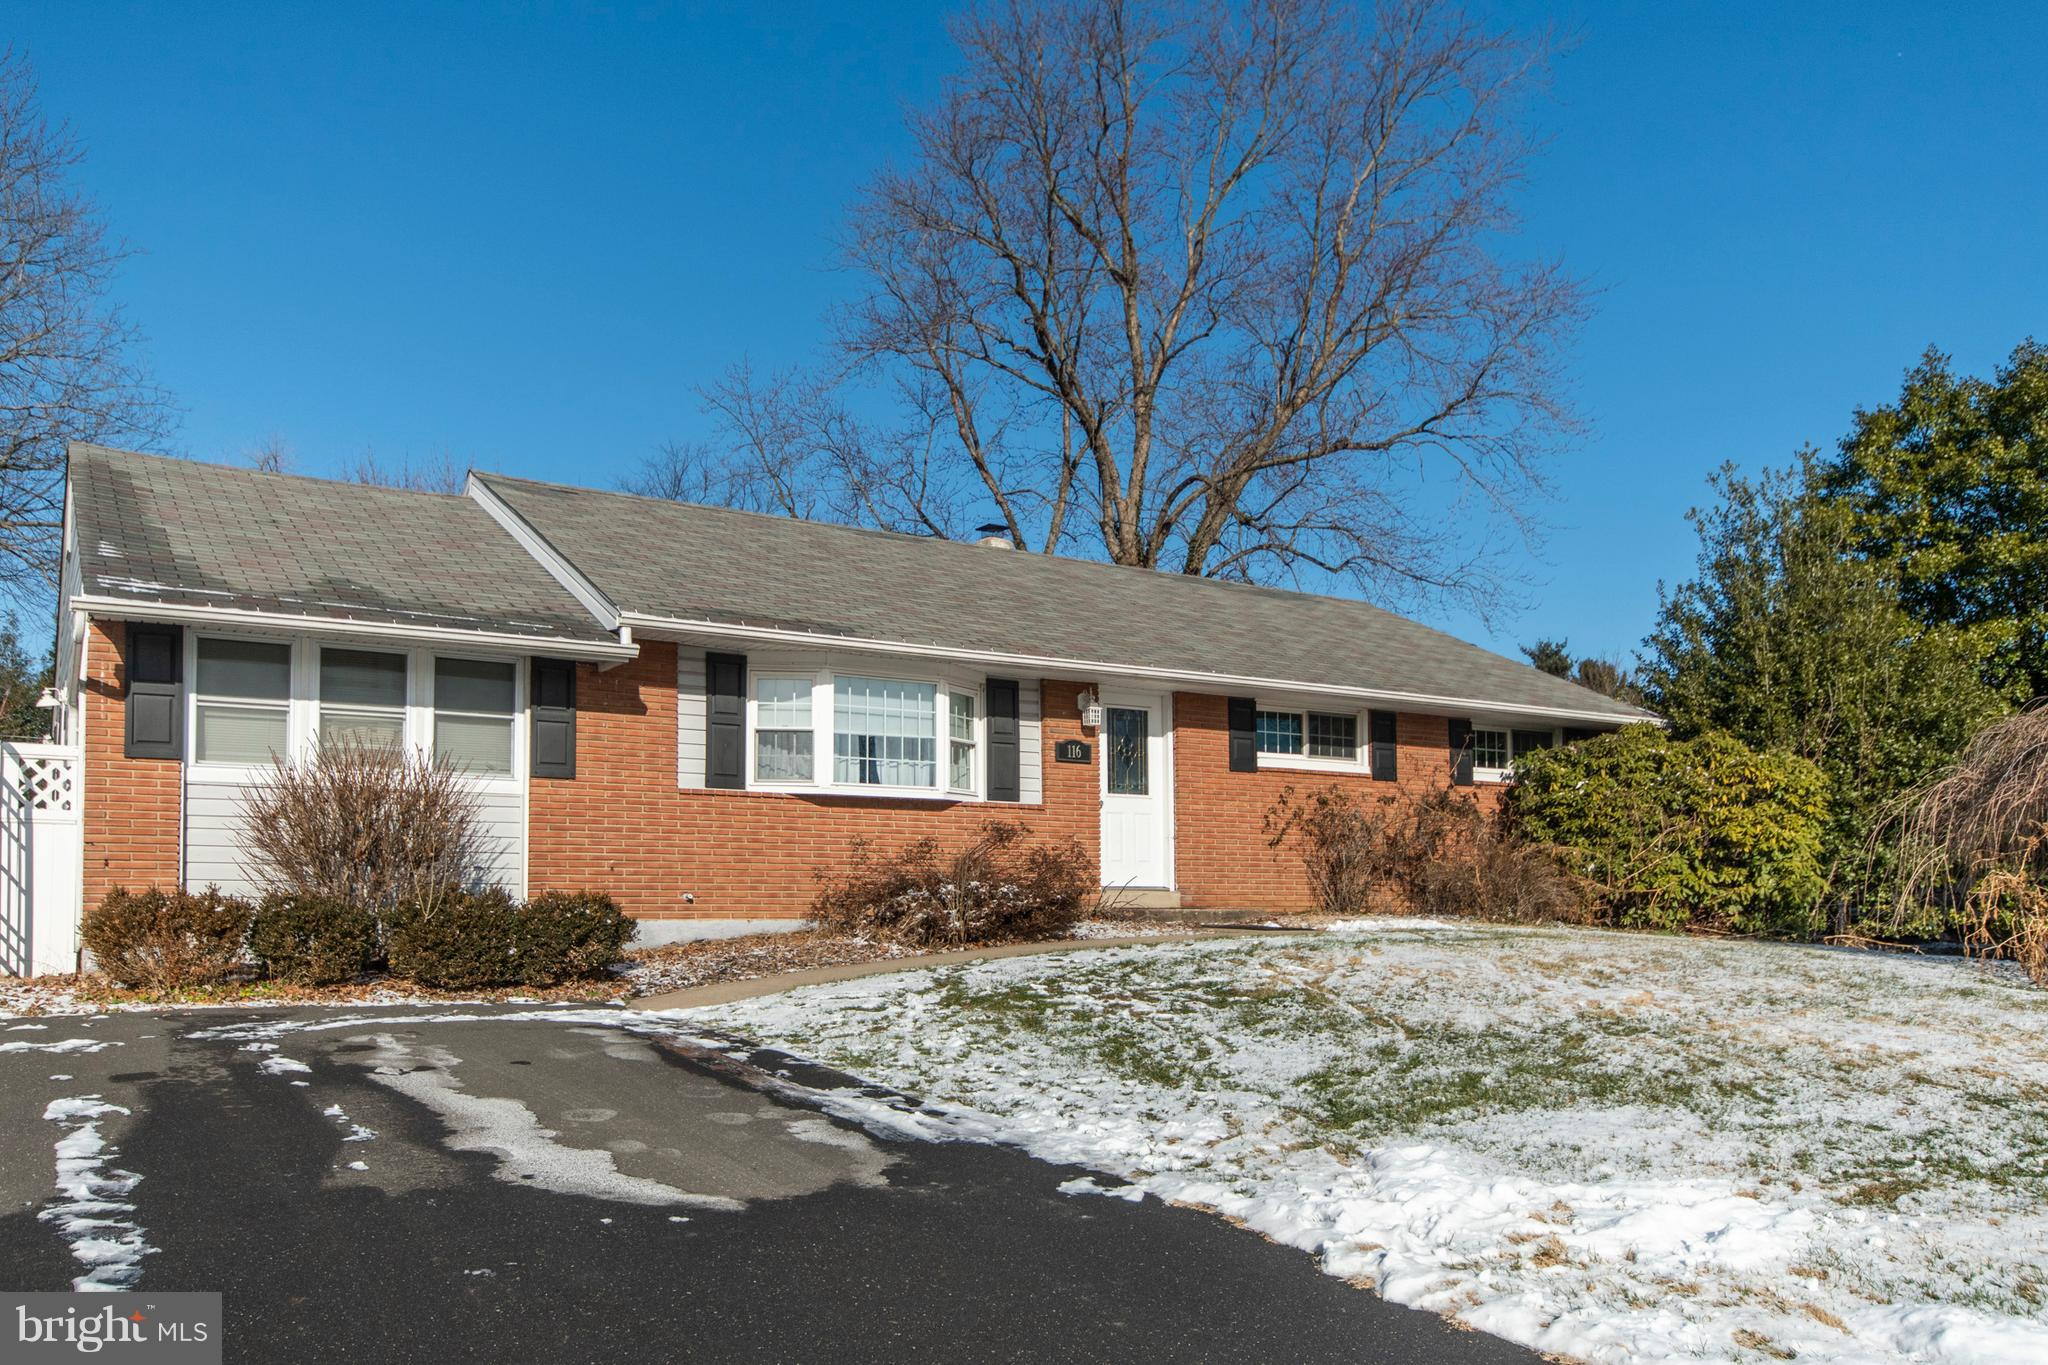 116 HOLLY DRIVE, HATBORO, PA 19040